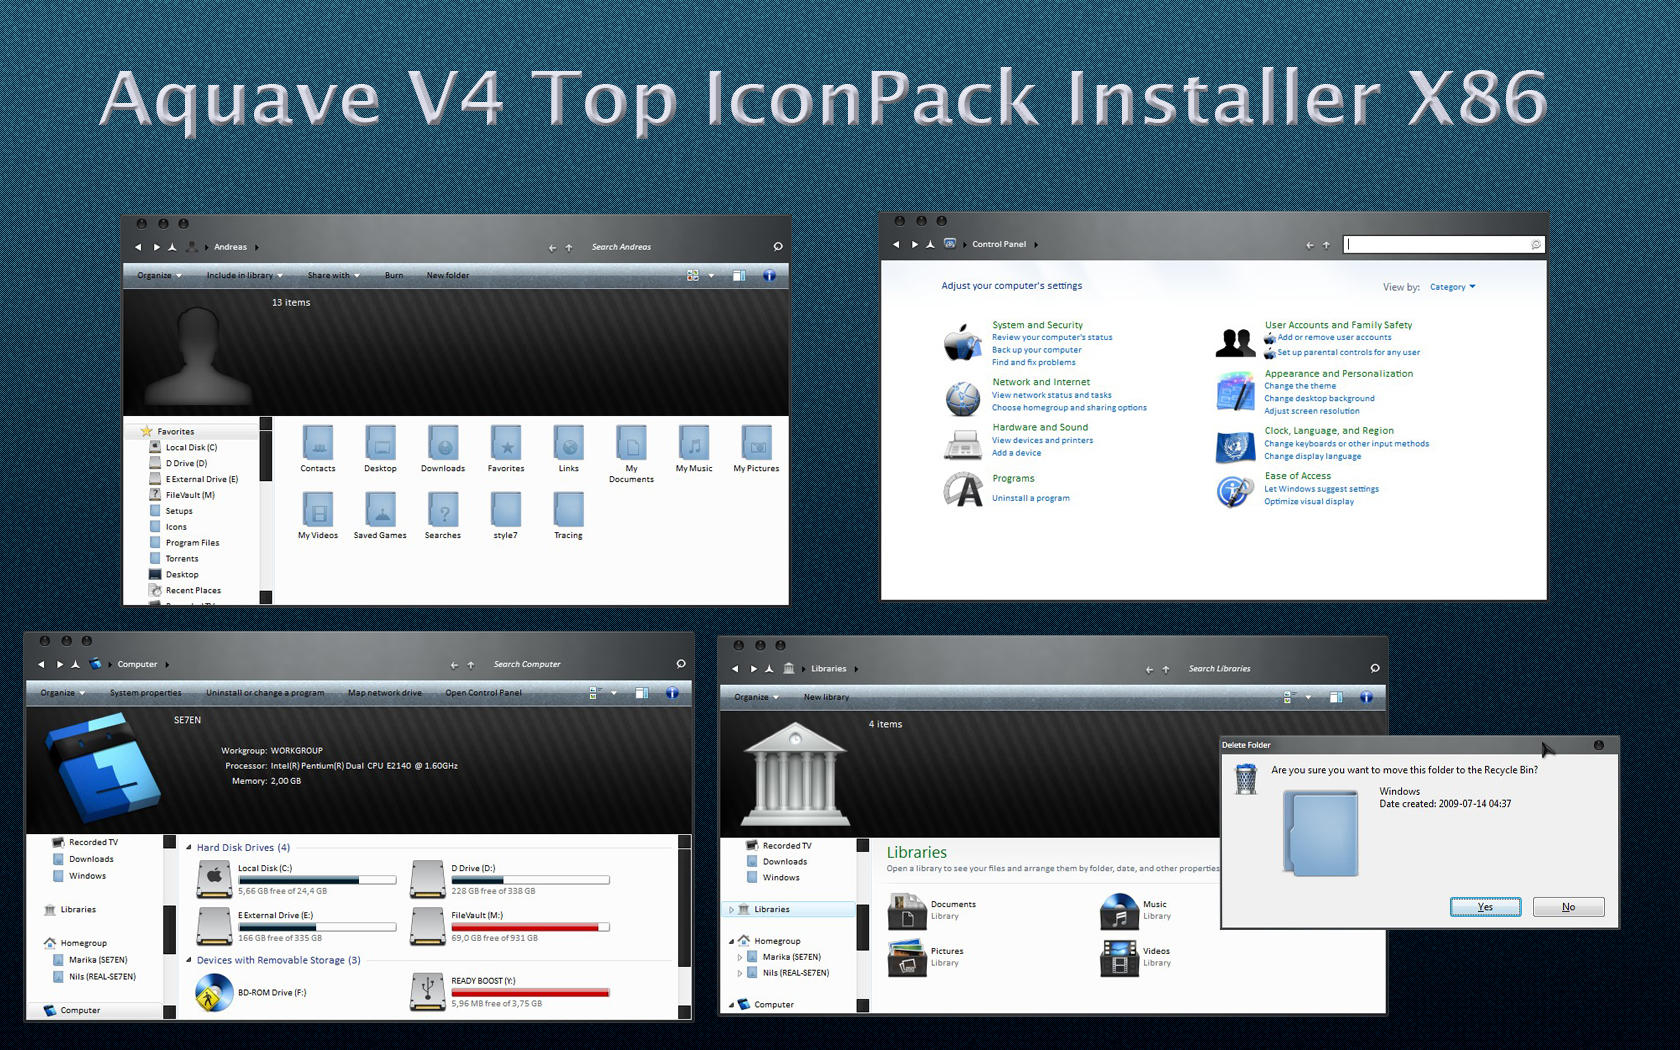 AquaveV4 iconPack Top Inst X86 by Mr-Ragnarok